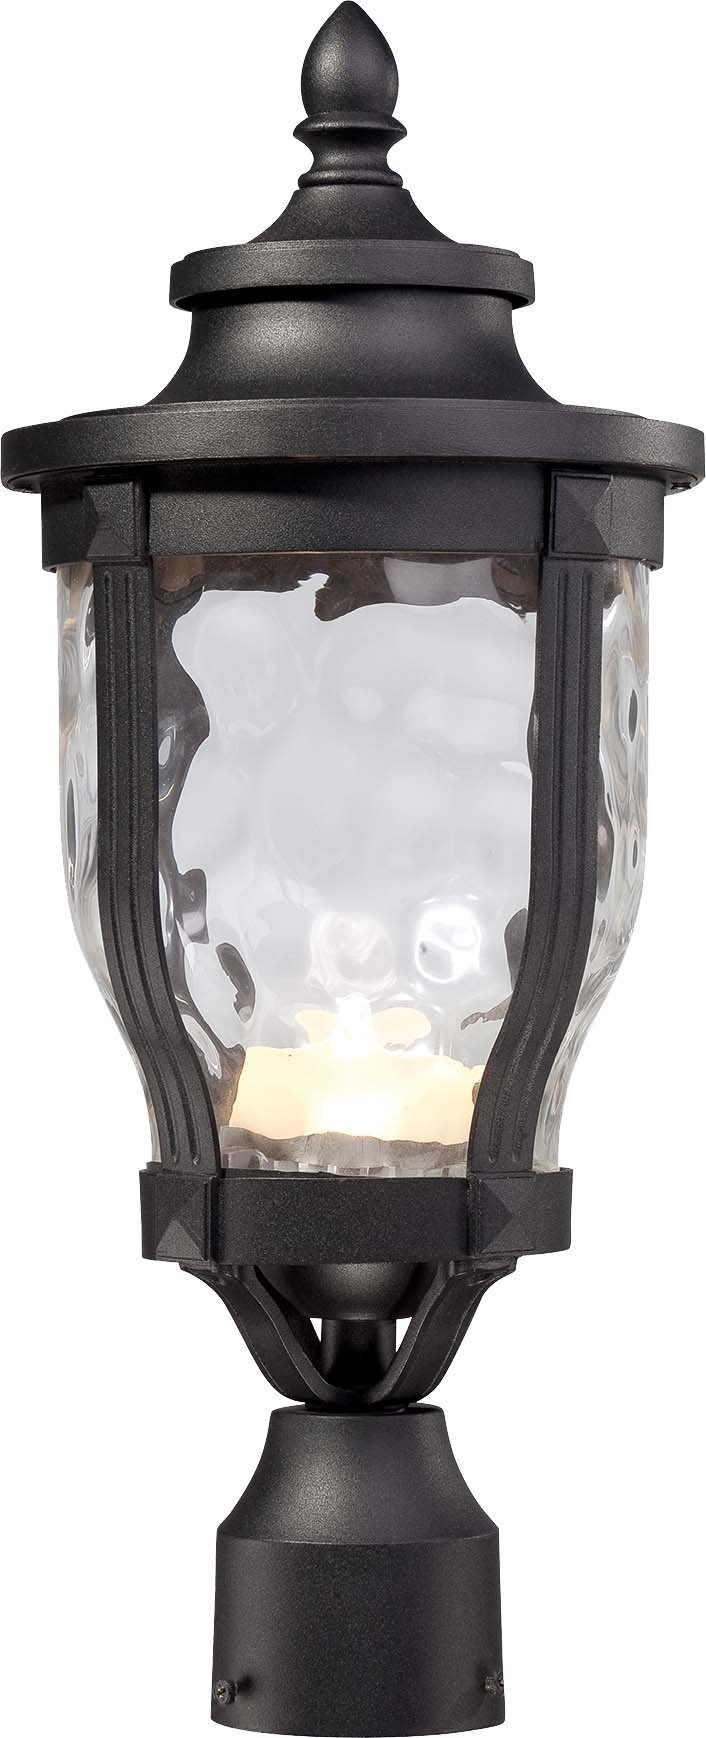 Minka Lavery 8766-66-L 1 Light Post Mount in Black Finish w/Clear Hammered Glass